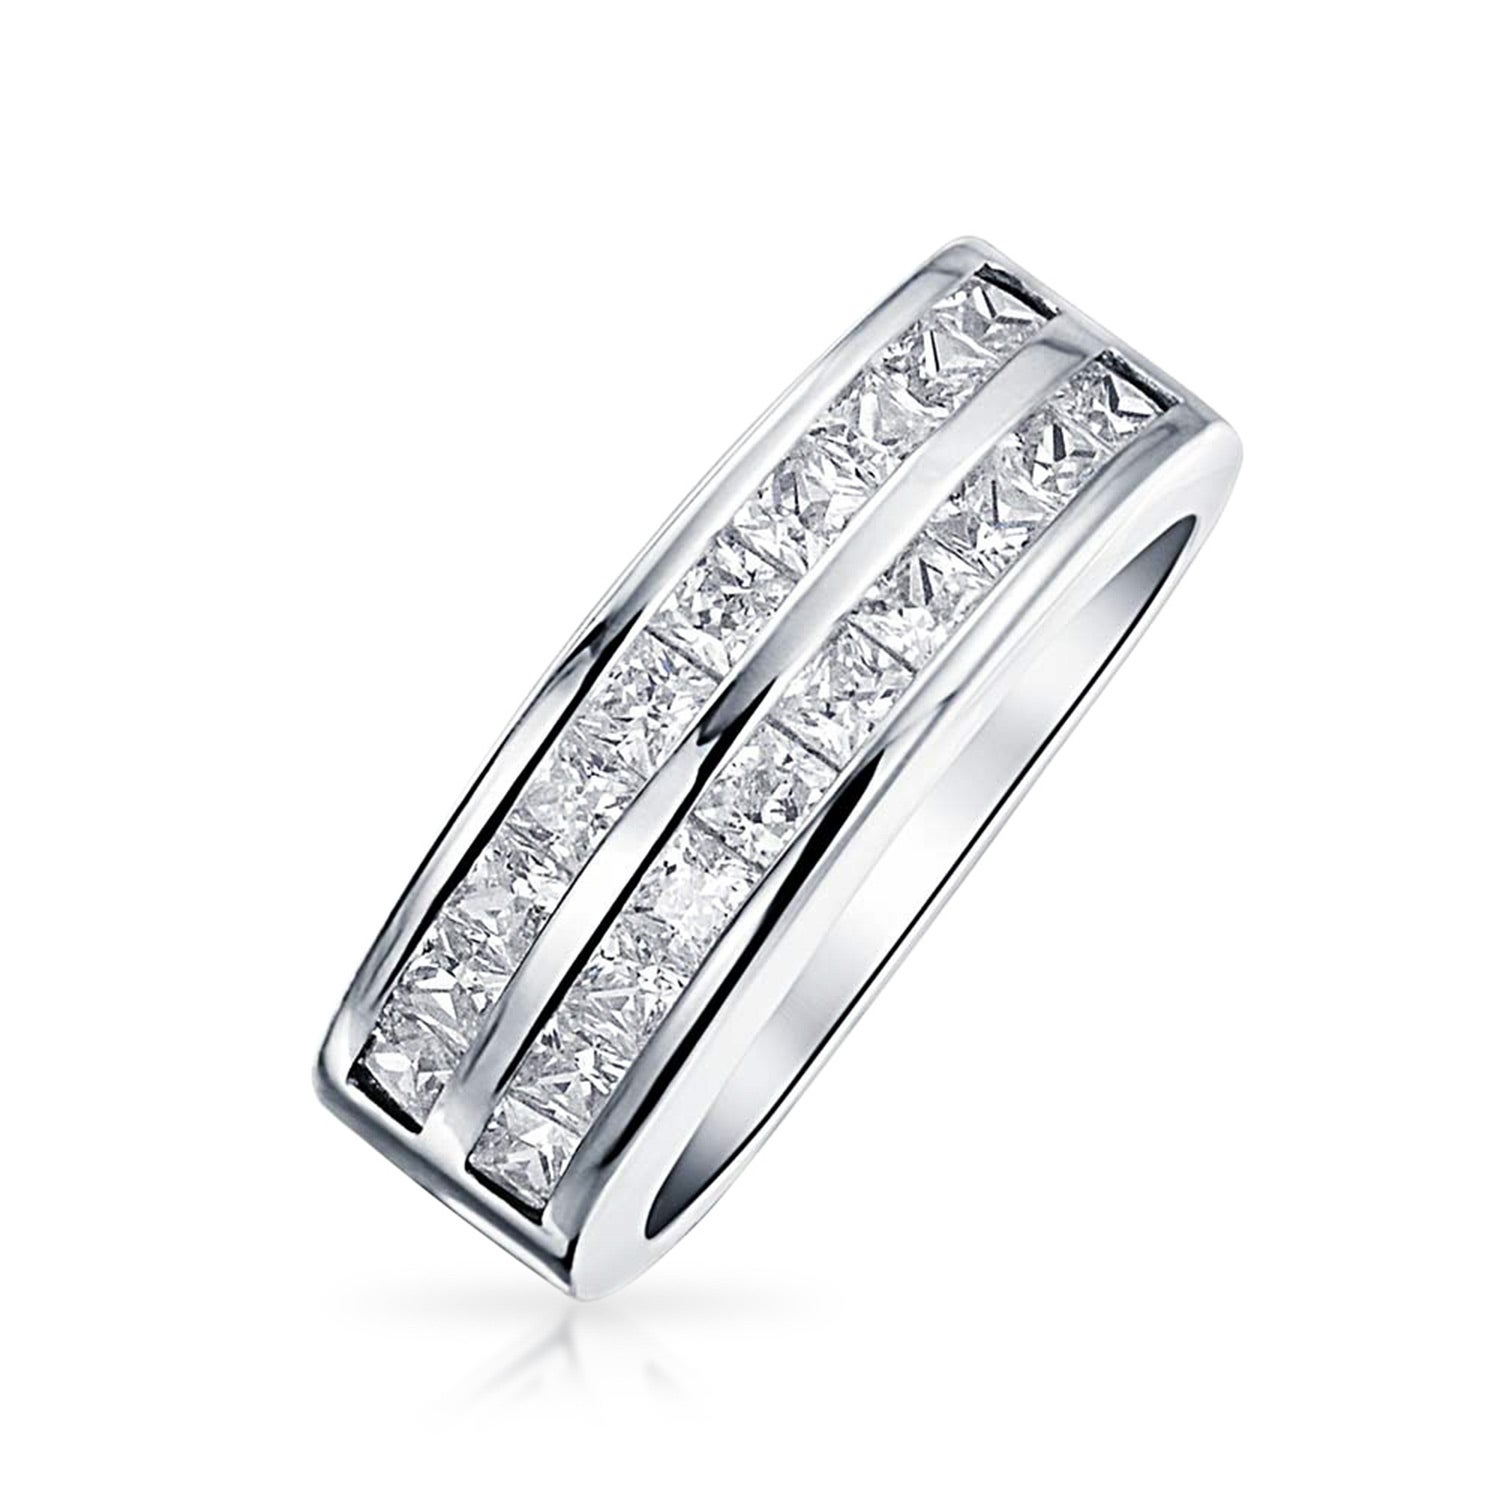 f5c827eed6da0 Buy Fine Cubic Zirconia Rings Online at Overstock | Our Best Rings Deals